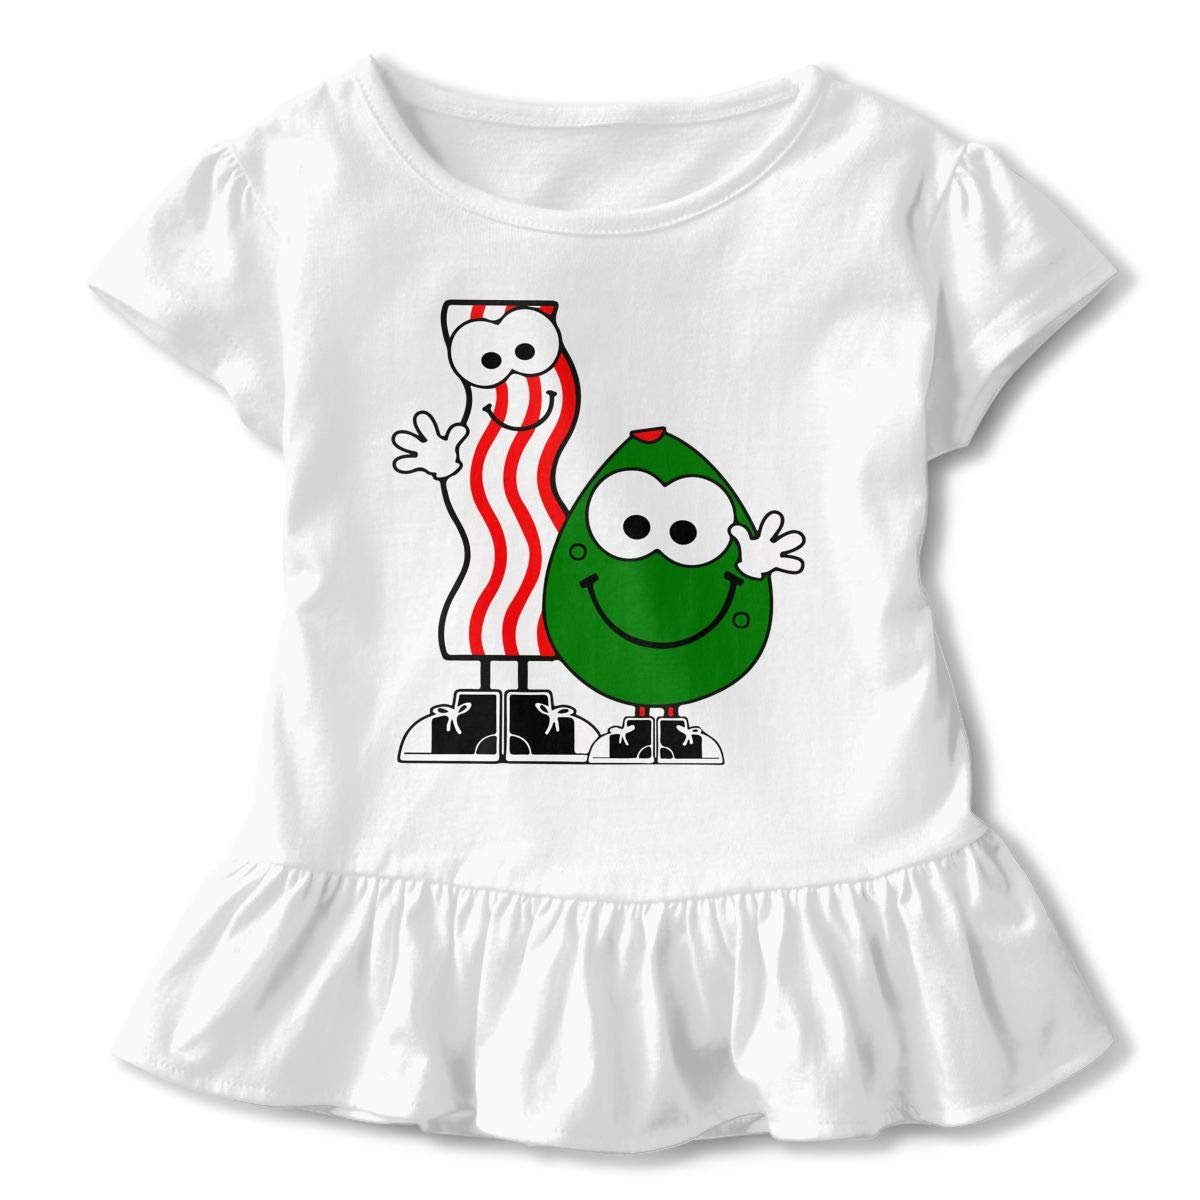 HYBDX9T Toddler Baby Girl Bacon and Avocado Funny Short Sleeve Cotton T Shirts Basic Tops Tee Clothes